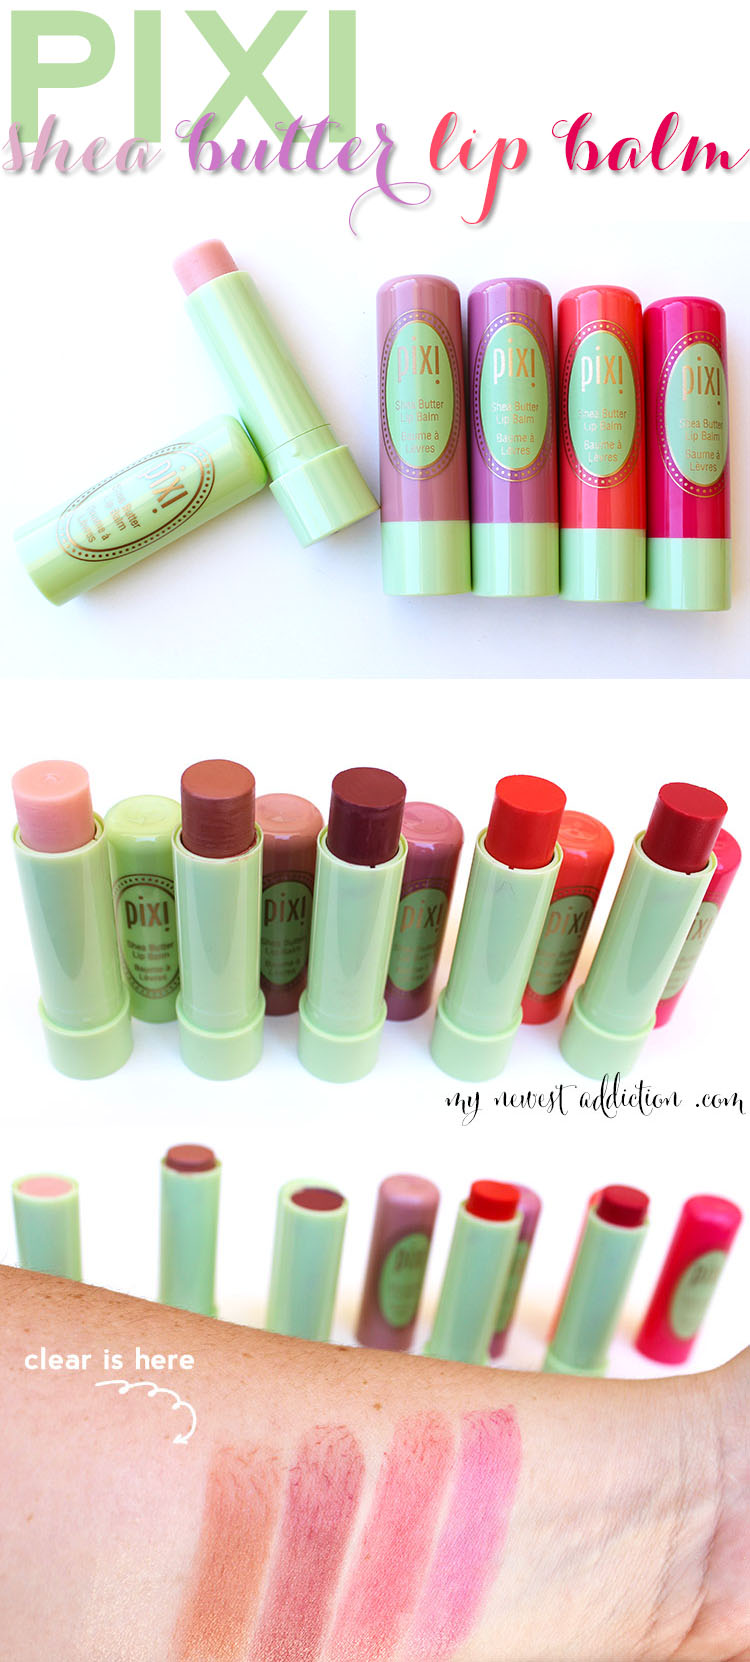 lip balm addiction Lip balm addiction is becoming a serious condition that needs to be dealt with properly this article will help understand what causes such an addiction and how to overcome it.